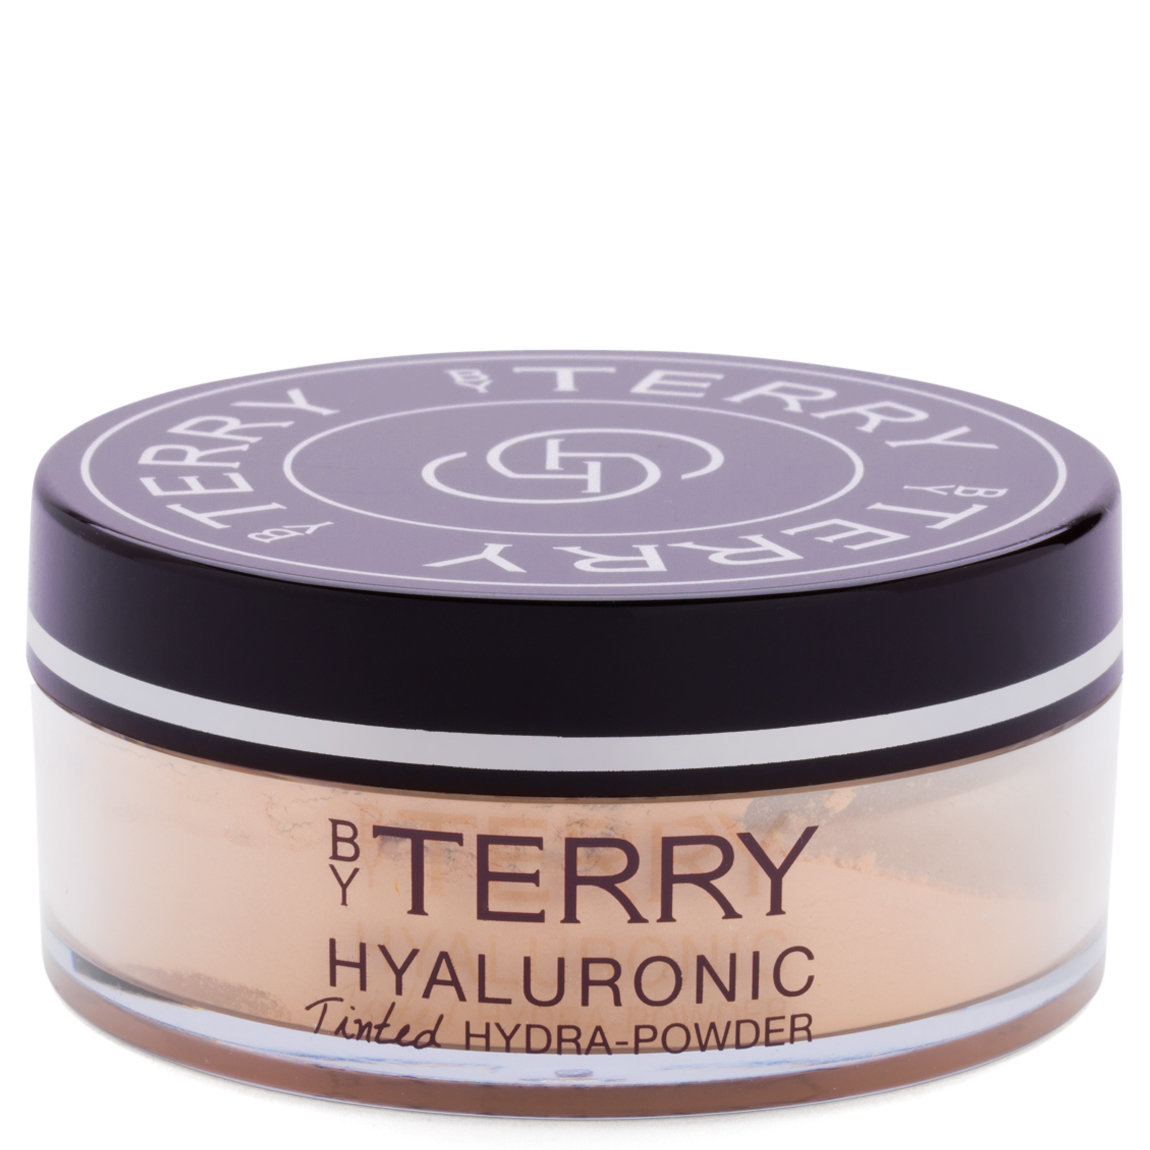 BY TERRY Hyaluronic Tinted Hydra-Powder N2 Apricot Light